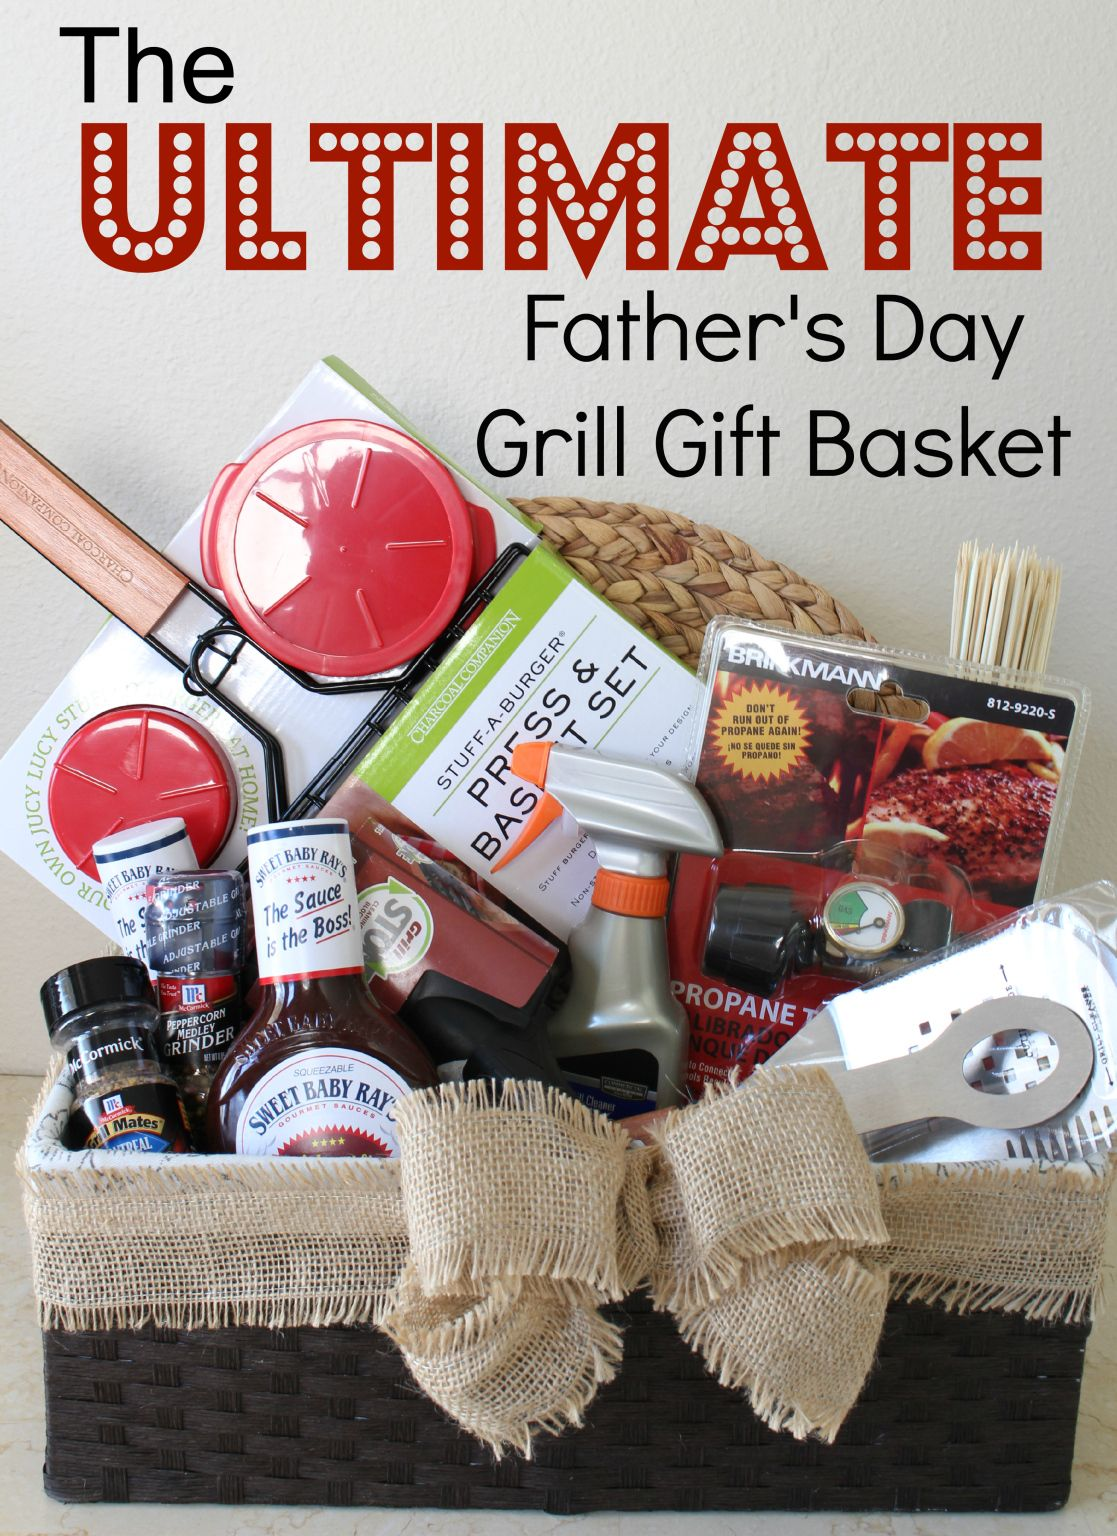 The ultimate fathers day grill gift basket projects pinterest grillmaster items diy for a manly gift basket via a girl in paradise do it yourself gift baskets ideas for all occasions perfect for christmas solutioingenieria Images